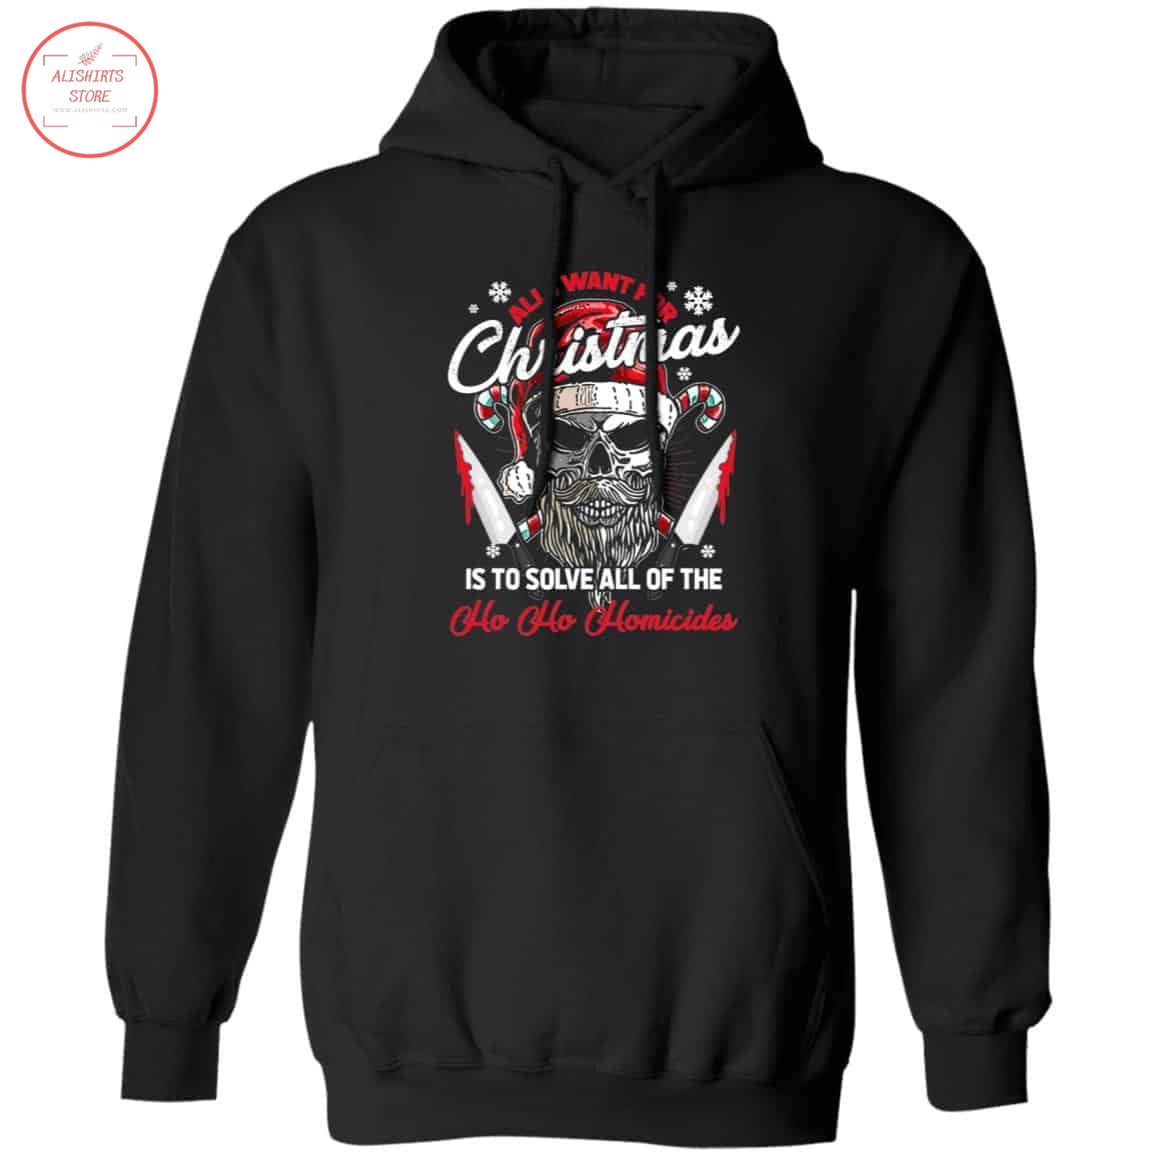 All I Want For Christmas Is To Solve All of The Ho Ho Homicides Shirt